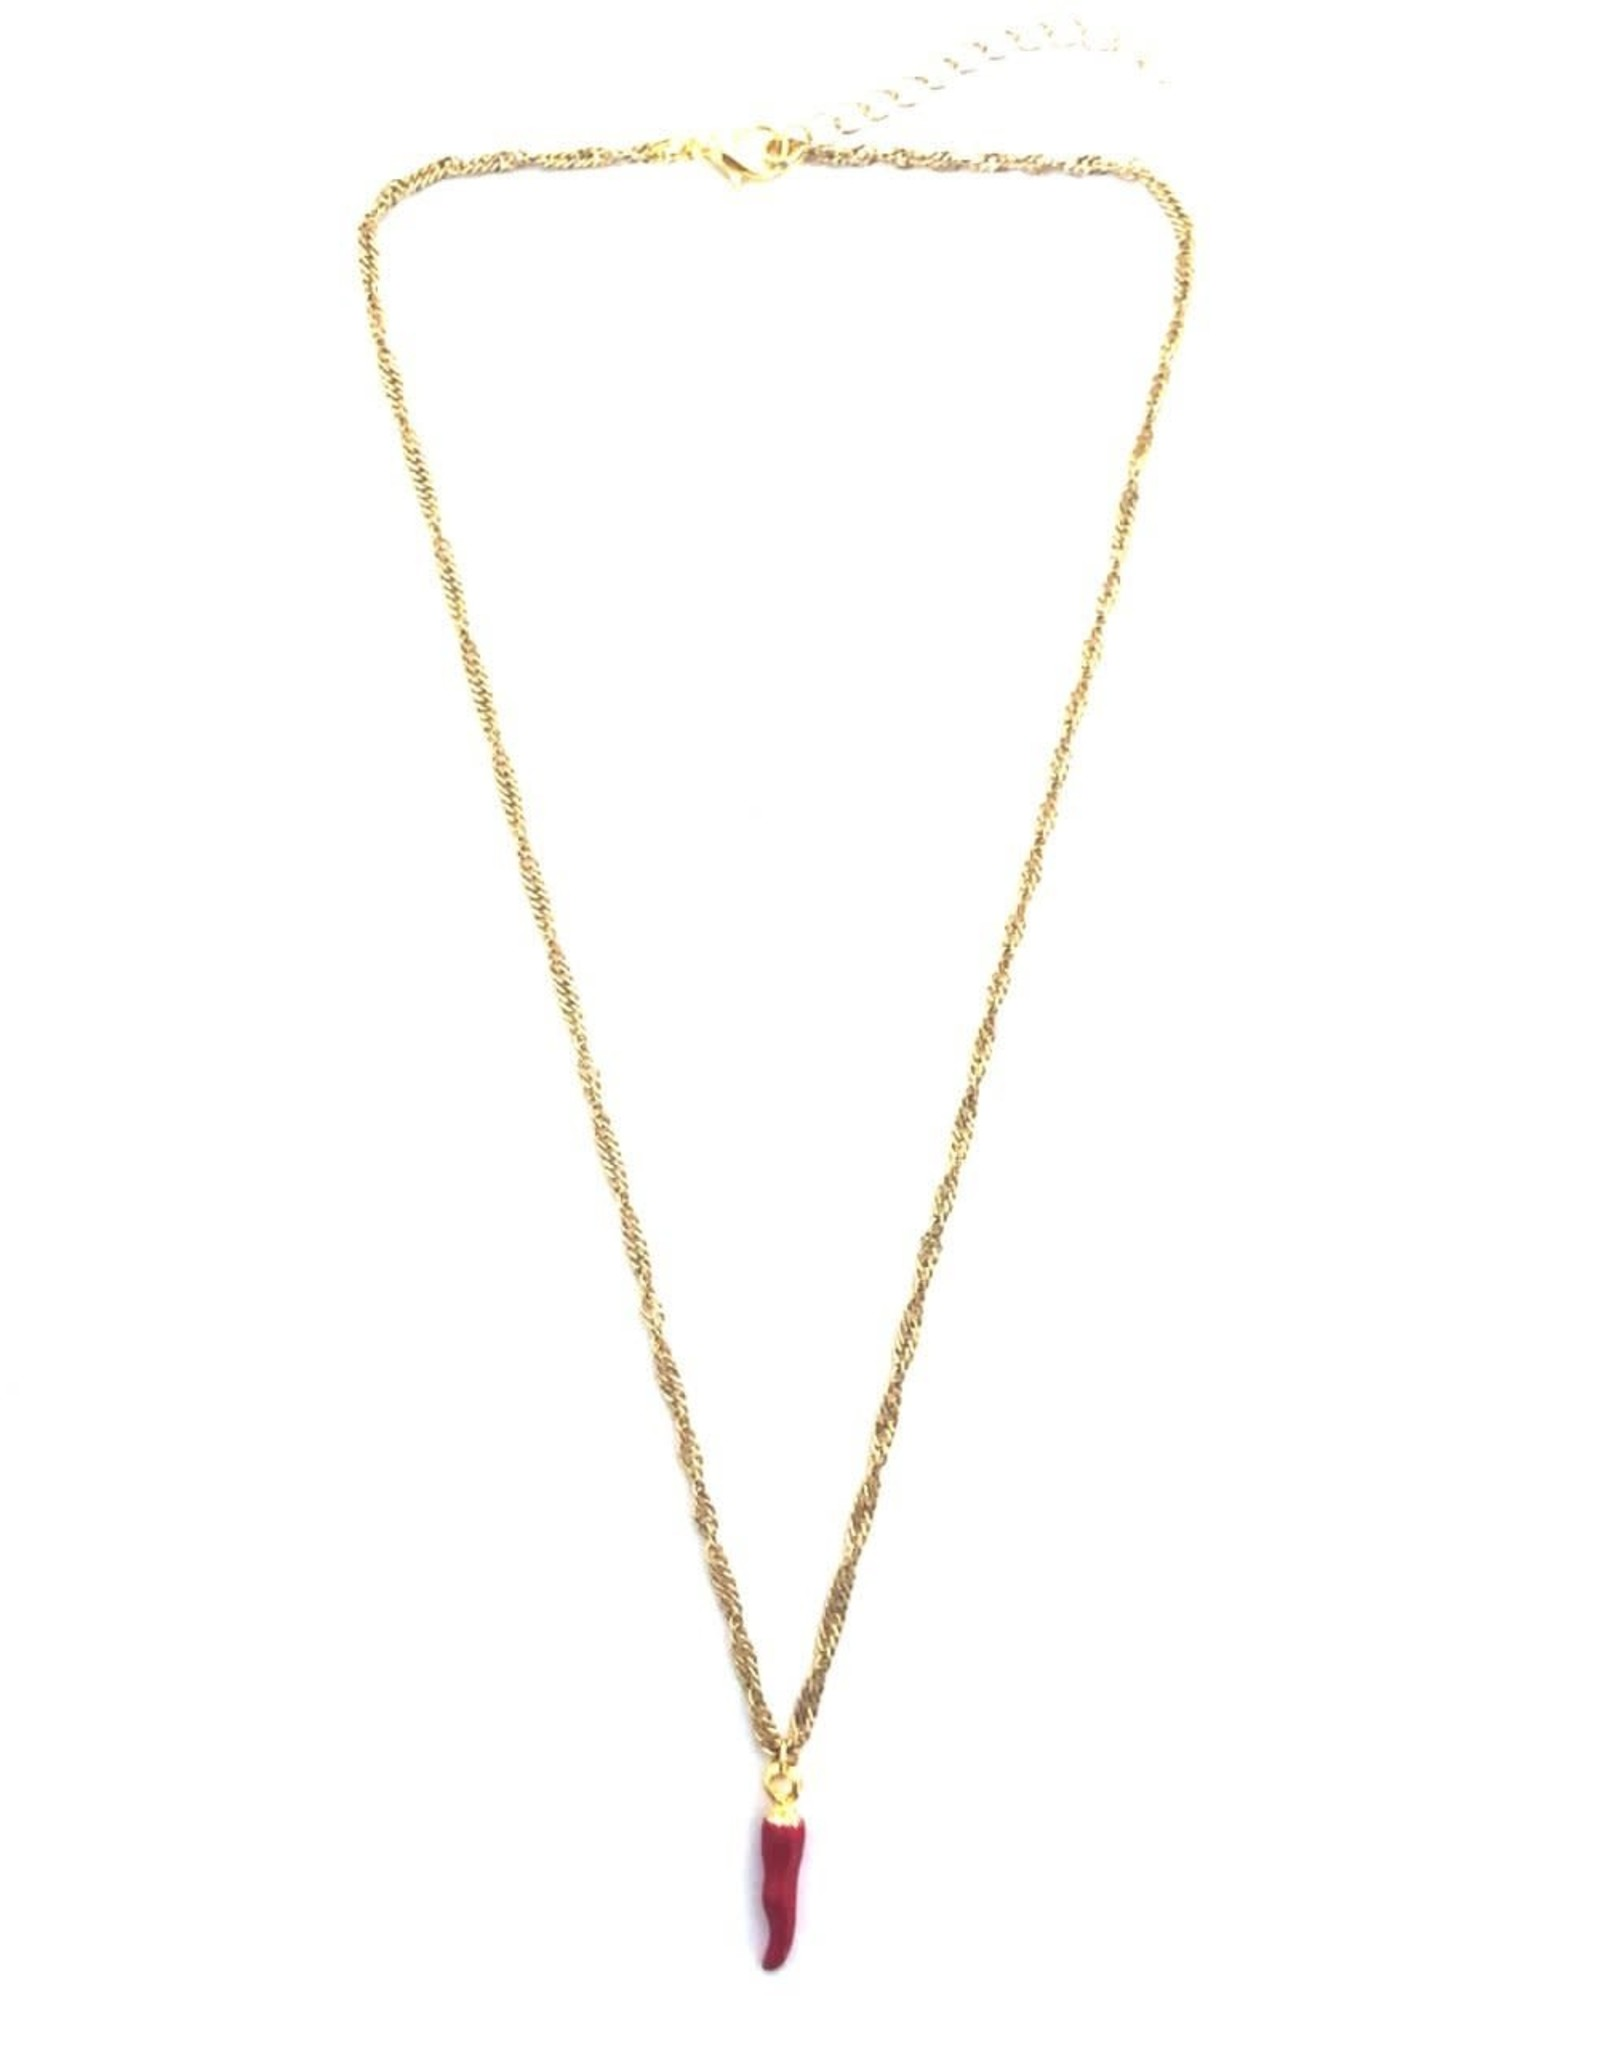 The Golden House Fine jewelry: pepper necklace